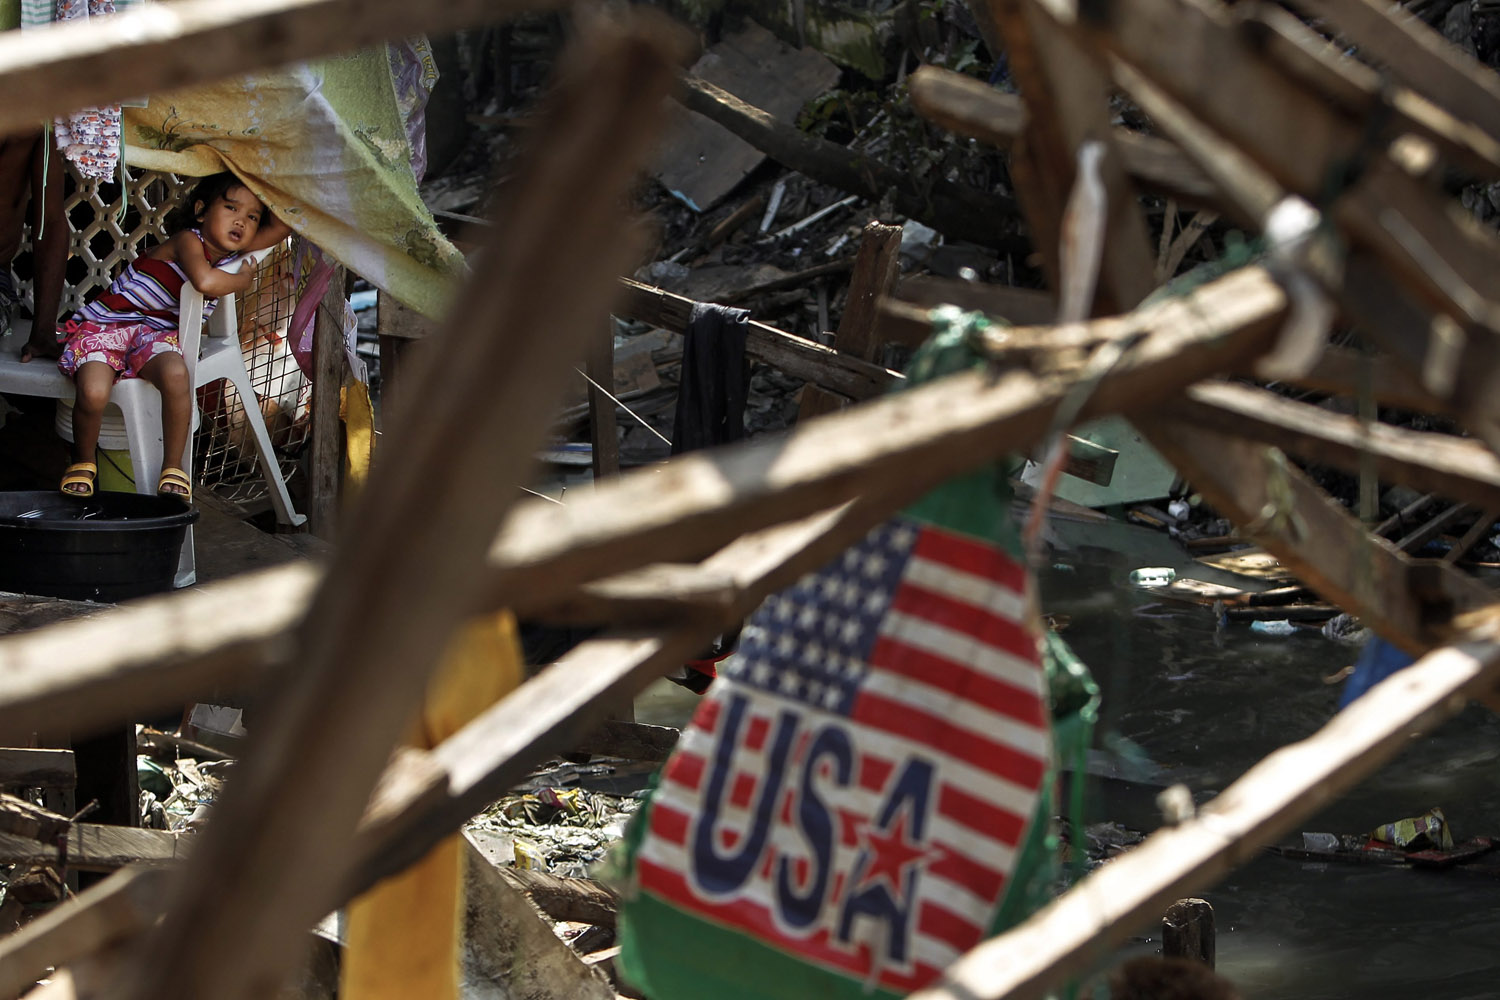 Jul. 23, 2014. A Filipino child looks from inside a shanty during a voluntary demolition at a slum area in Manila, Philippines.